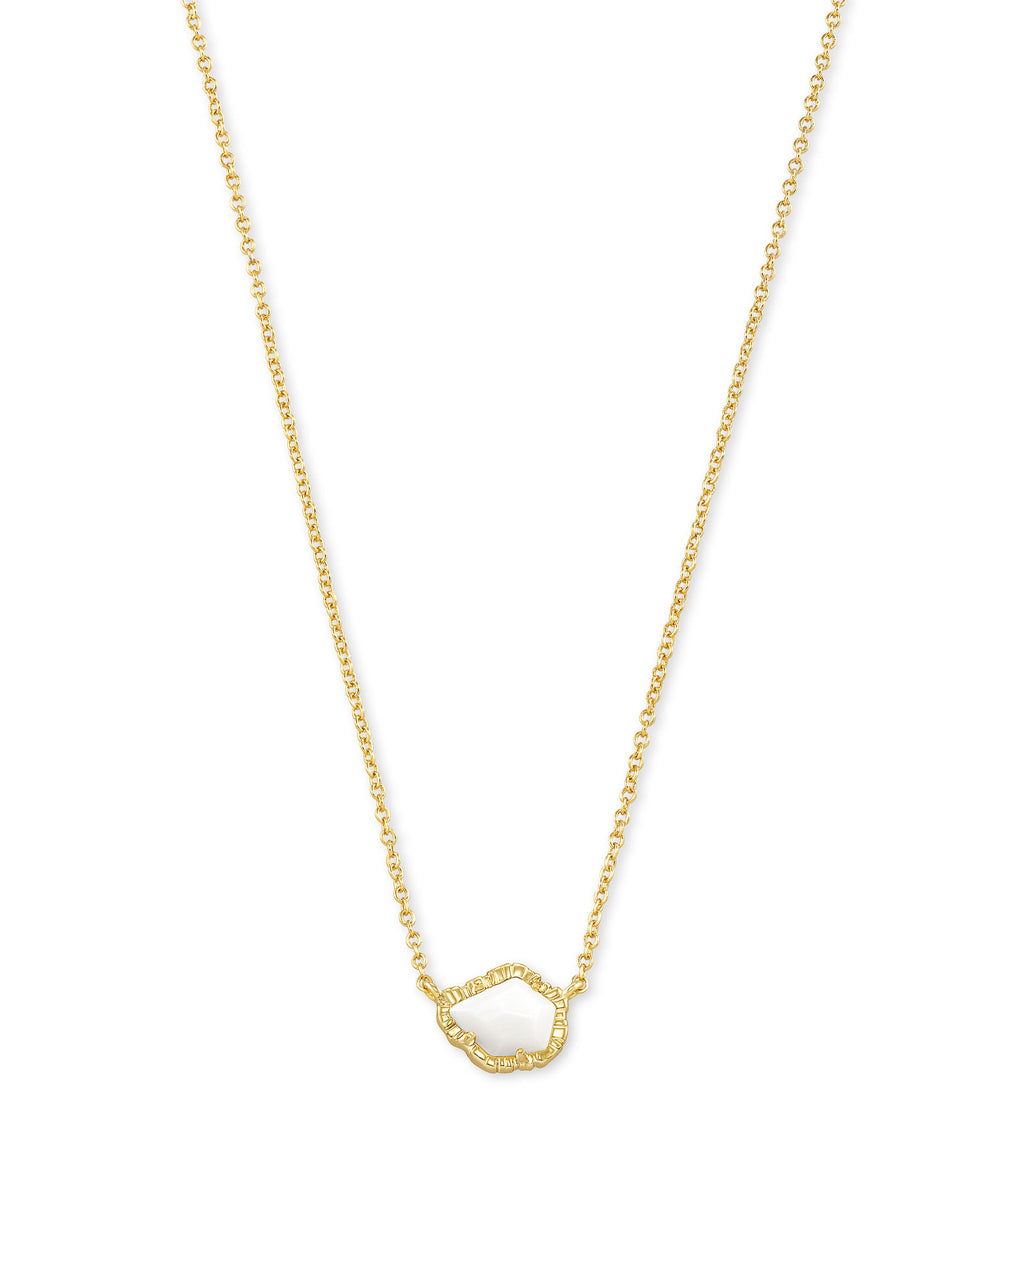 Tessa Small Pendant Necklace in Gold White Mussel